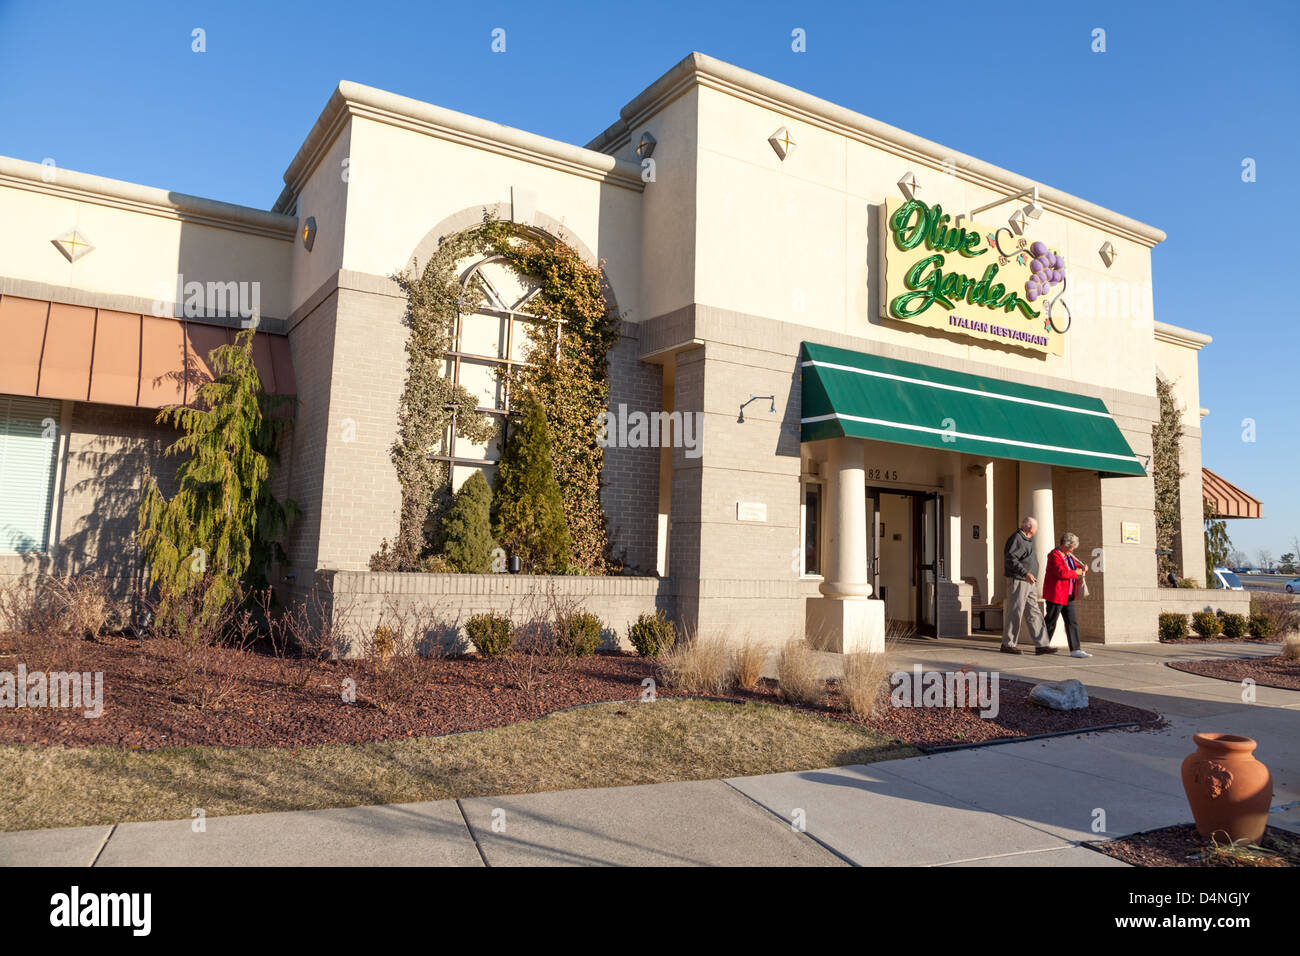 a typical olive garden restaurant baltimore county maryland stock image - Olive Garden Yakima